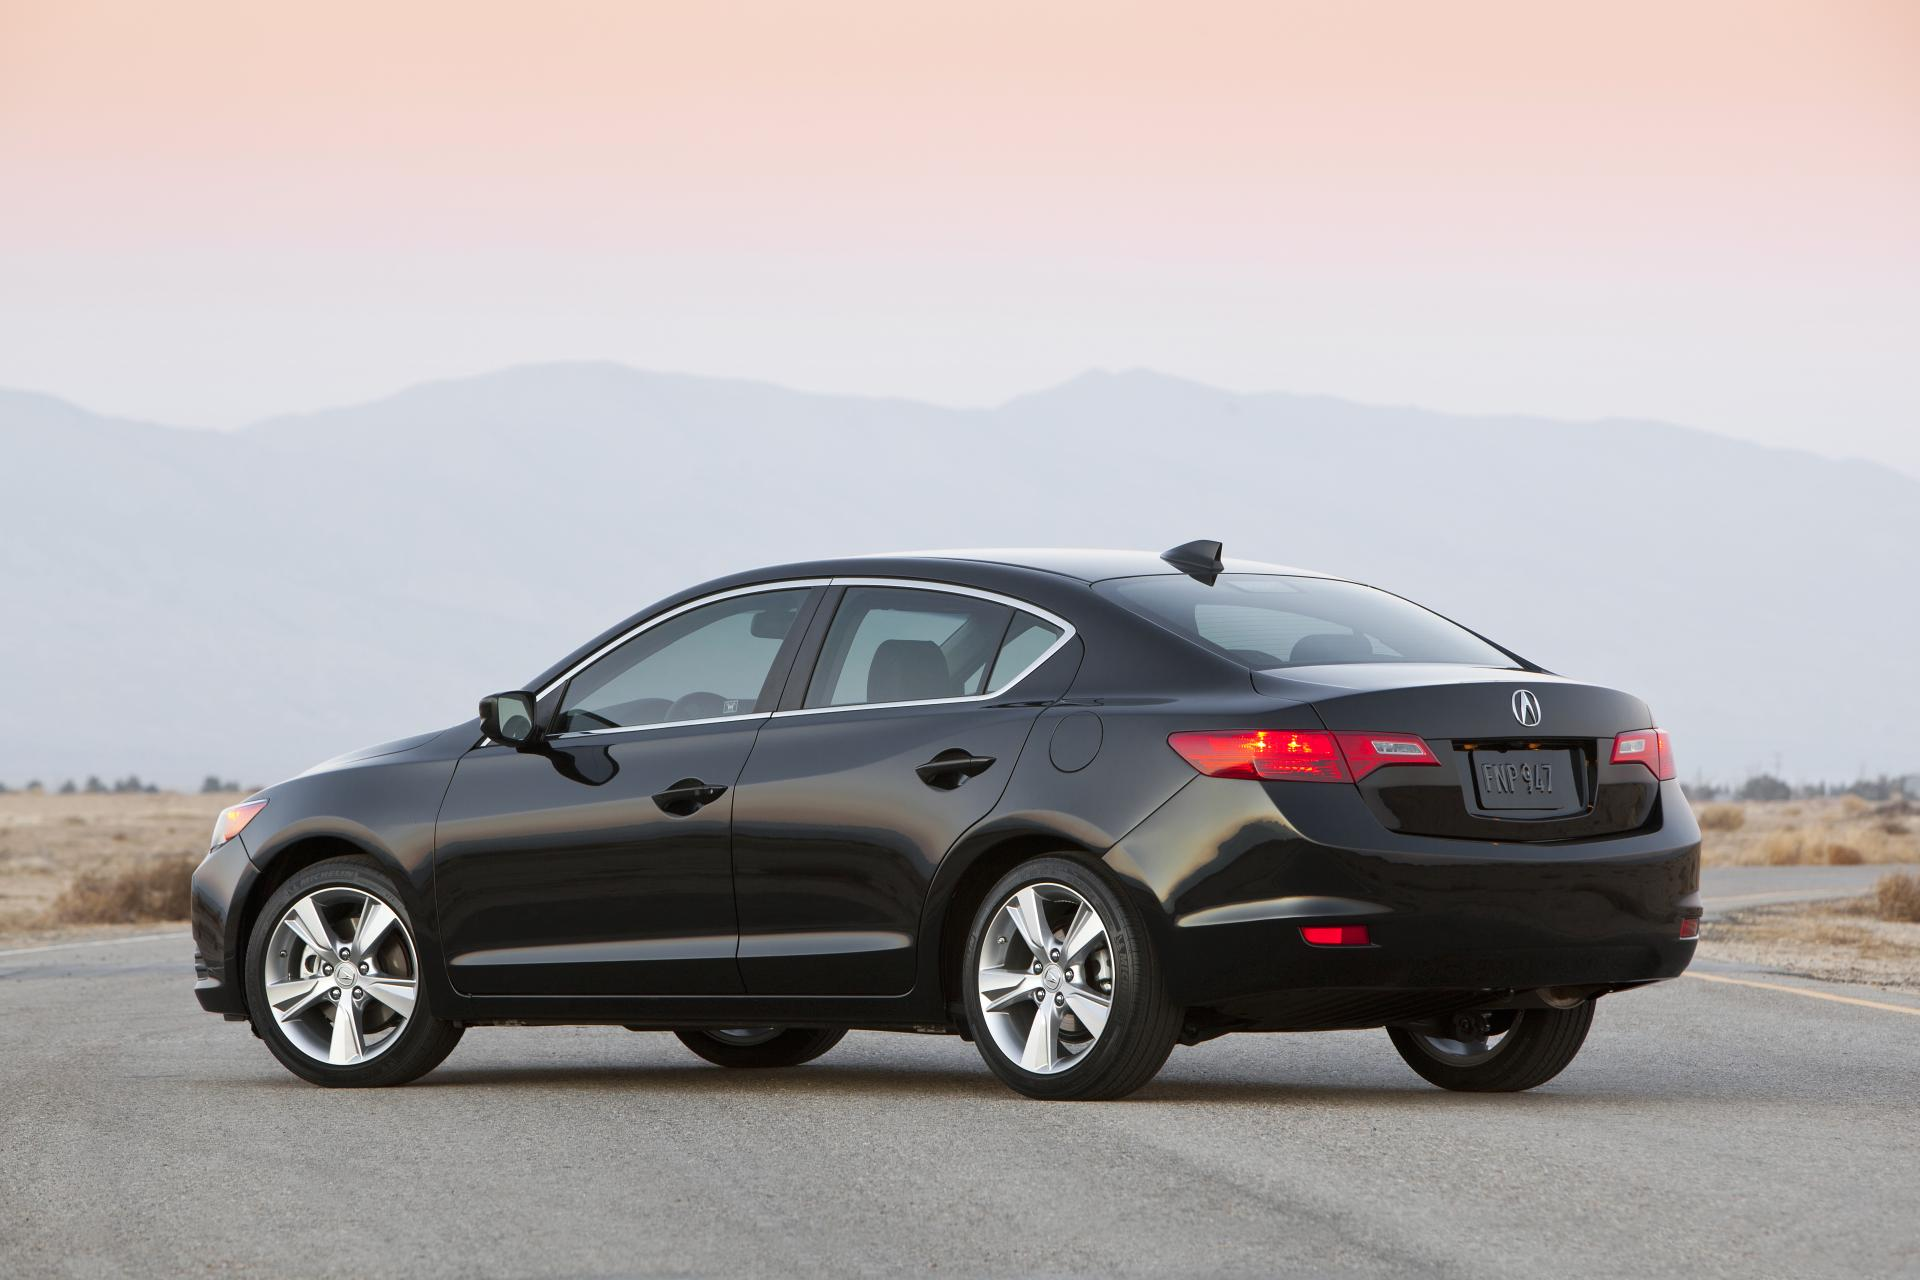 Acura Ilx Engine Size, Acura, Free Engine Image For User Manual ...